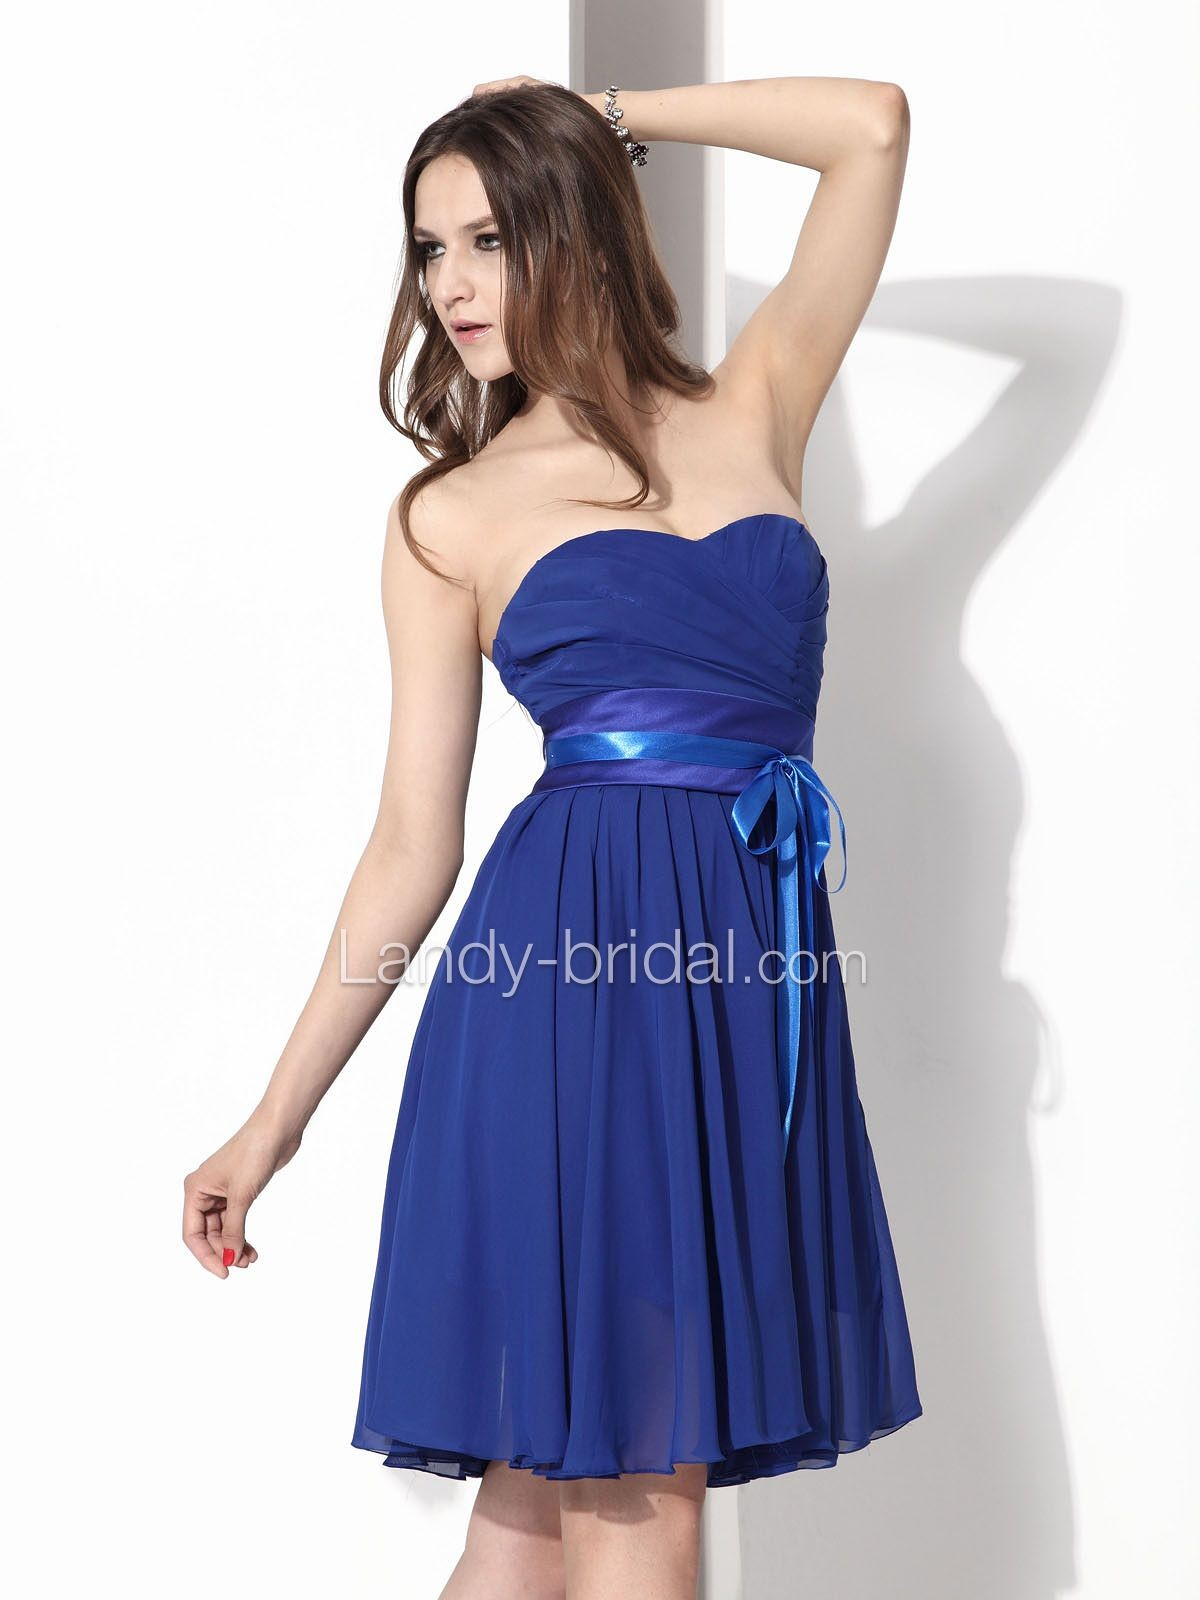 The most beautiful blue dress in the world - Top 10 Most Beautiful ...